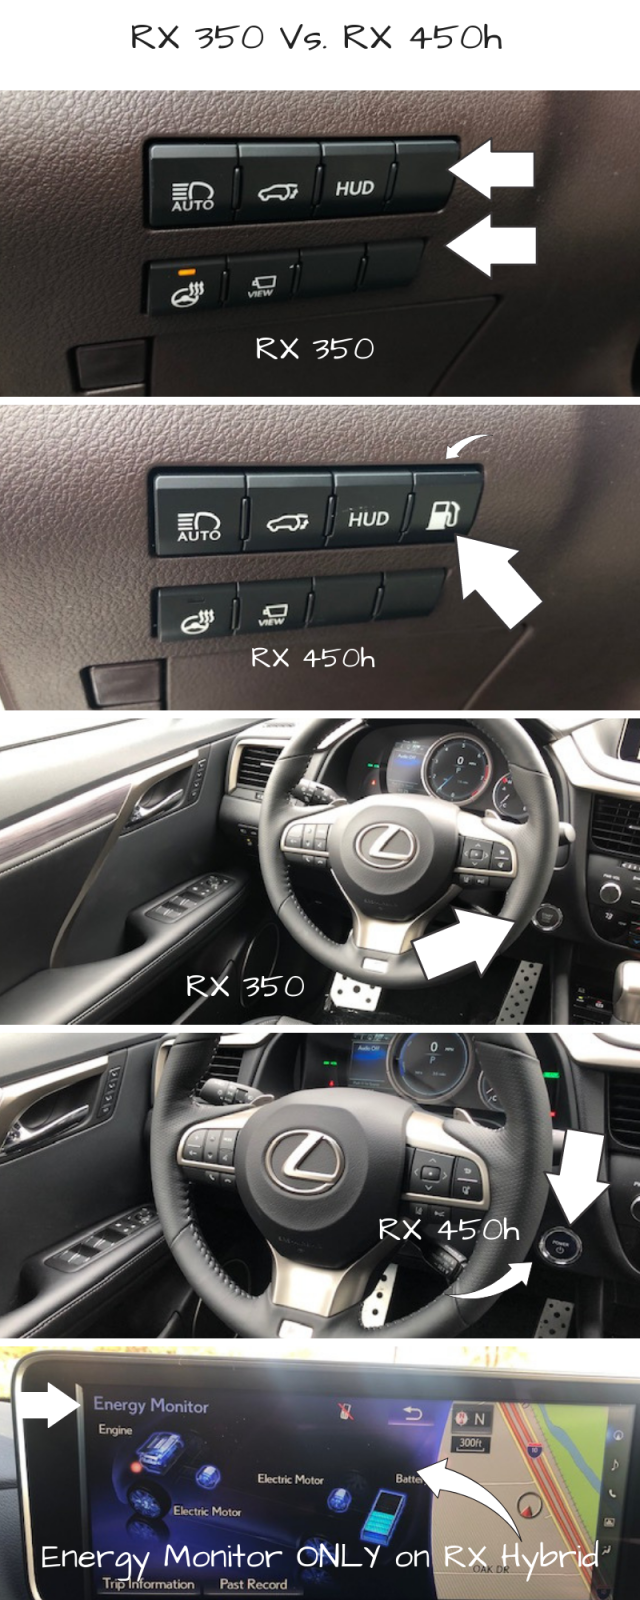 How To Tell The Difference Between The Rx 350 And Rx 450h Lexus Models Lexus North Park